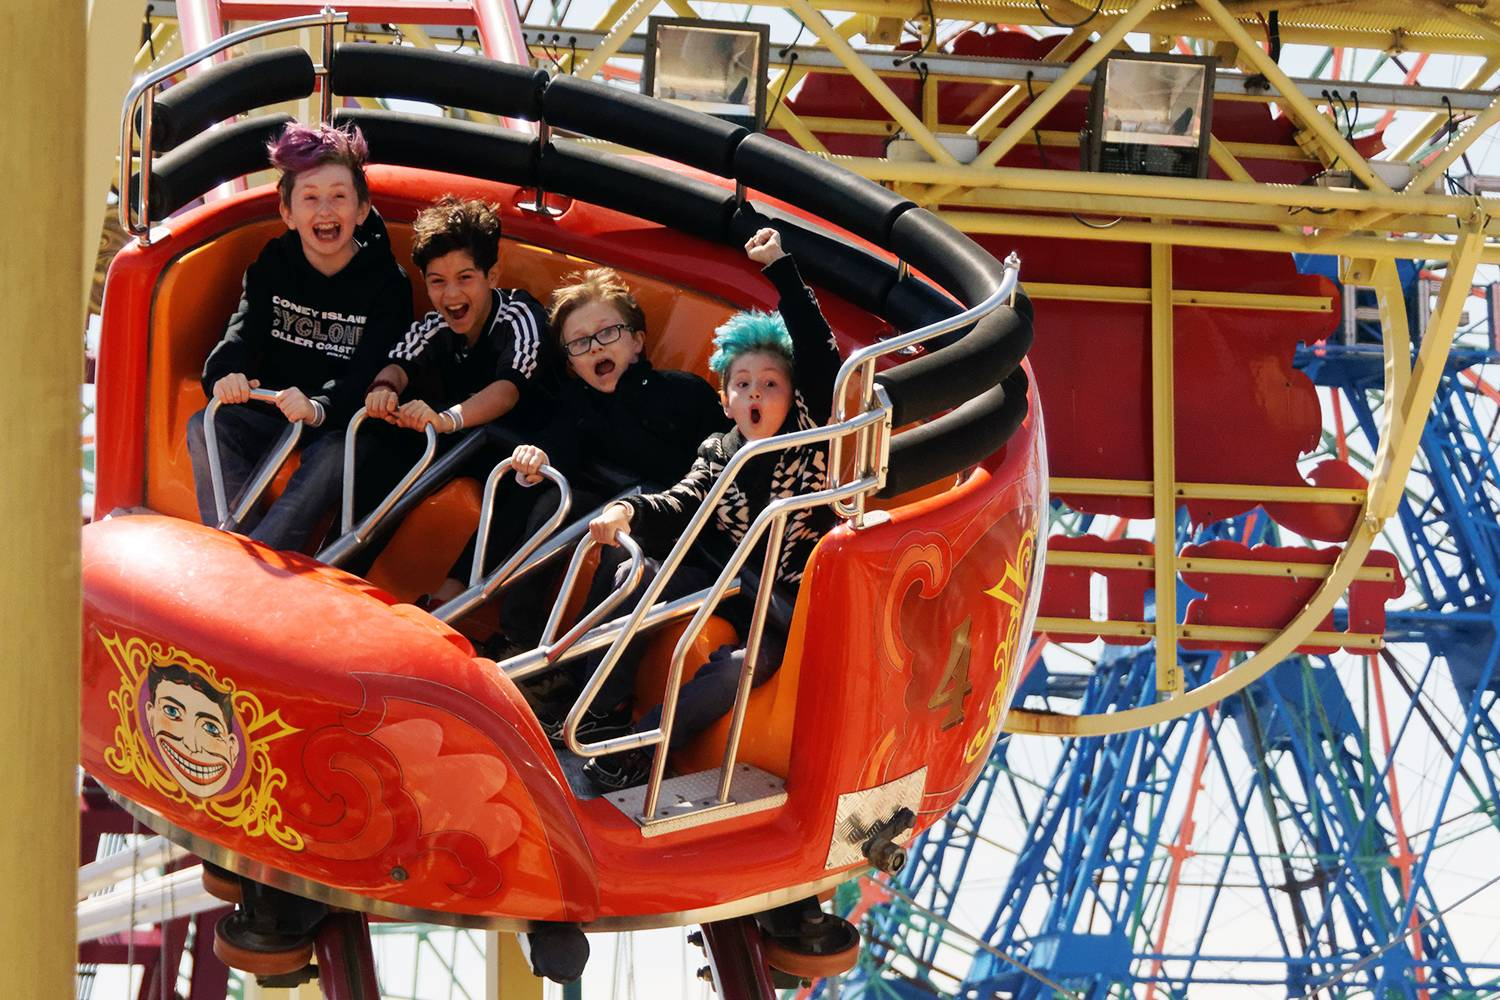 kids enjoy a thrilling ride at Luna Park in Coney Island Brooklyn